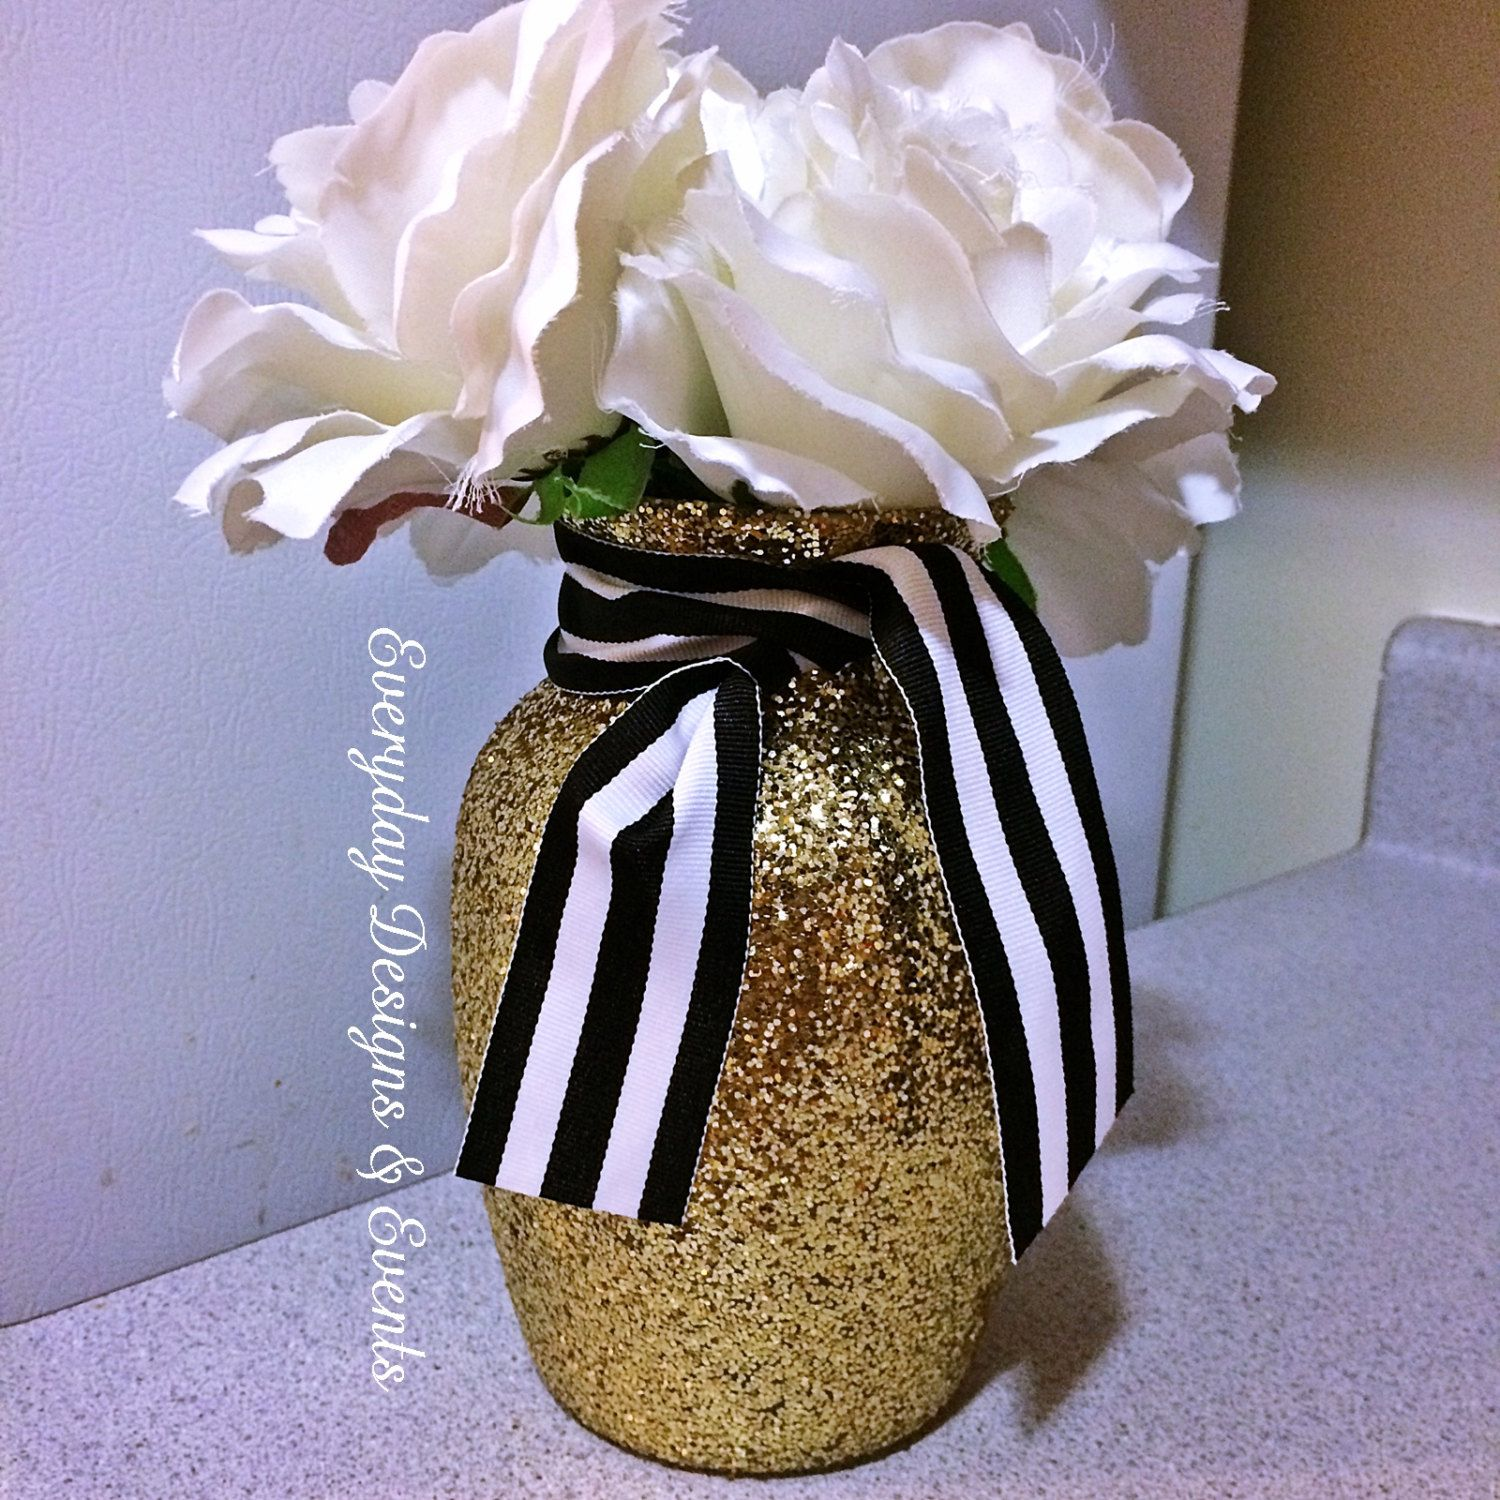 Kate spade inspired decorations you can even order hot pink kate spade inspired decorations you can even order hot pink ribbons as well on gold vase centerpiecesgold vaseswhite vasesbaby shower reviewsmspy